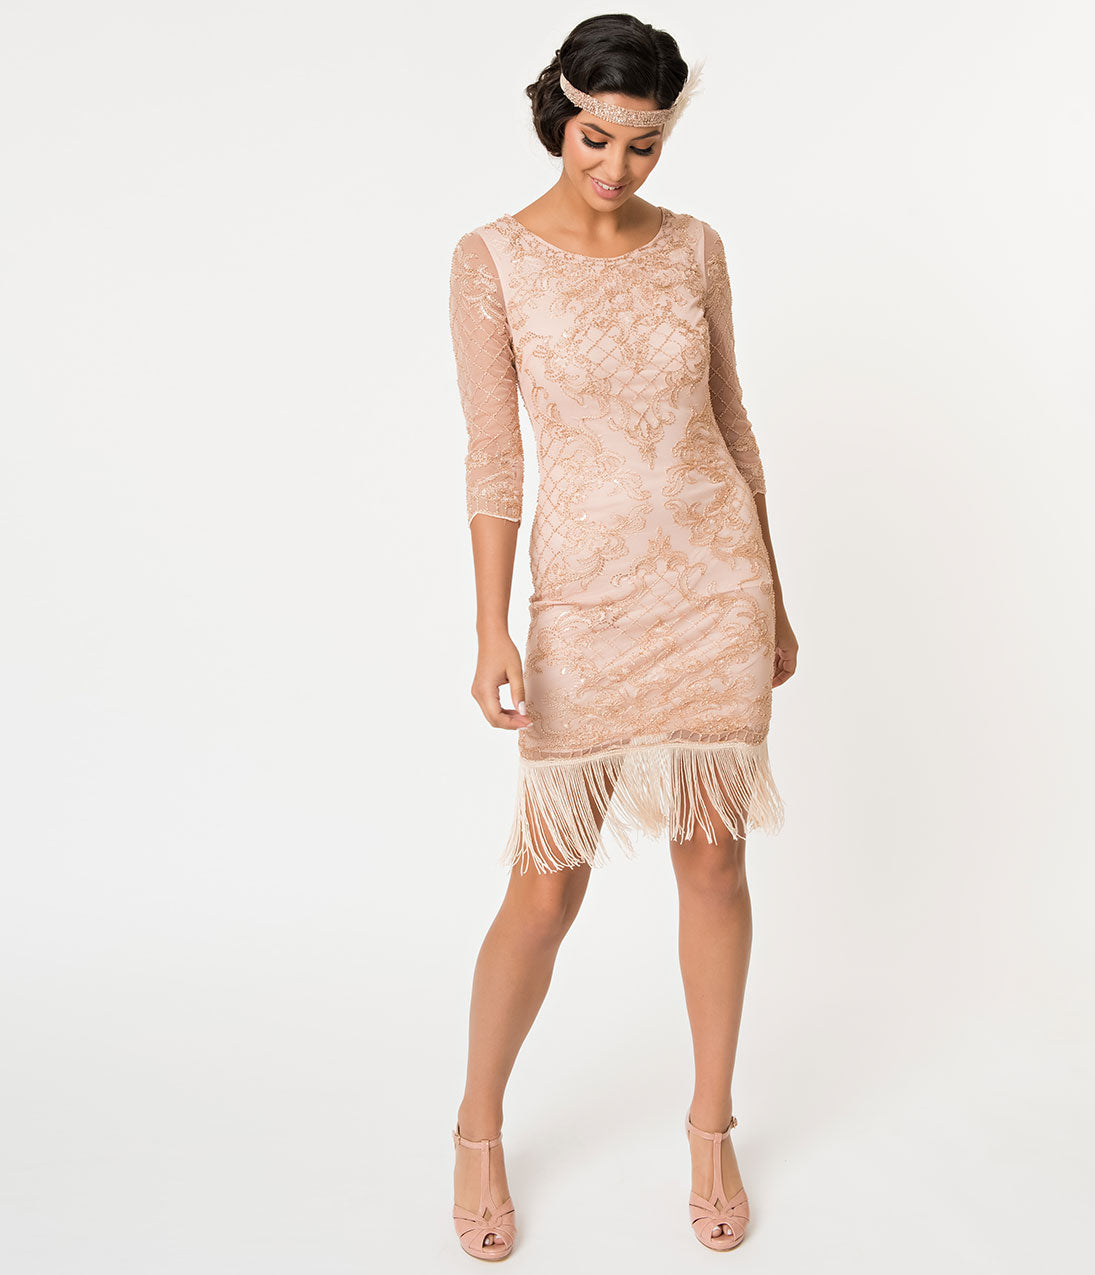 Downton Abbey Inspired Dresses 1920S Style Rose Pink  Gold Beaded Sleeved Fringe Flapper Dress $110.00 AT vintagedancer.com